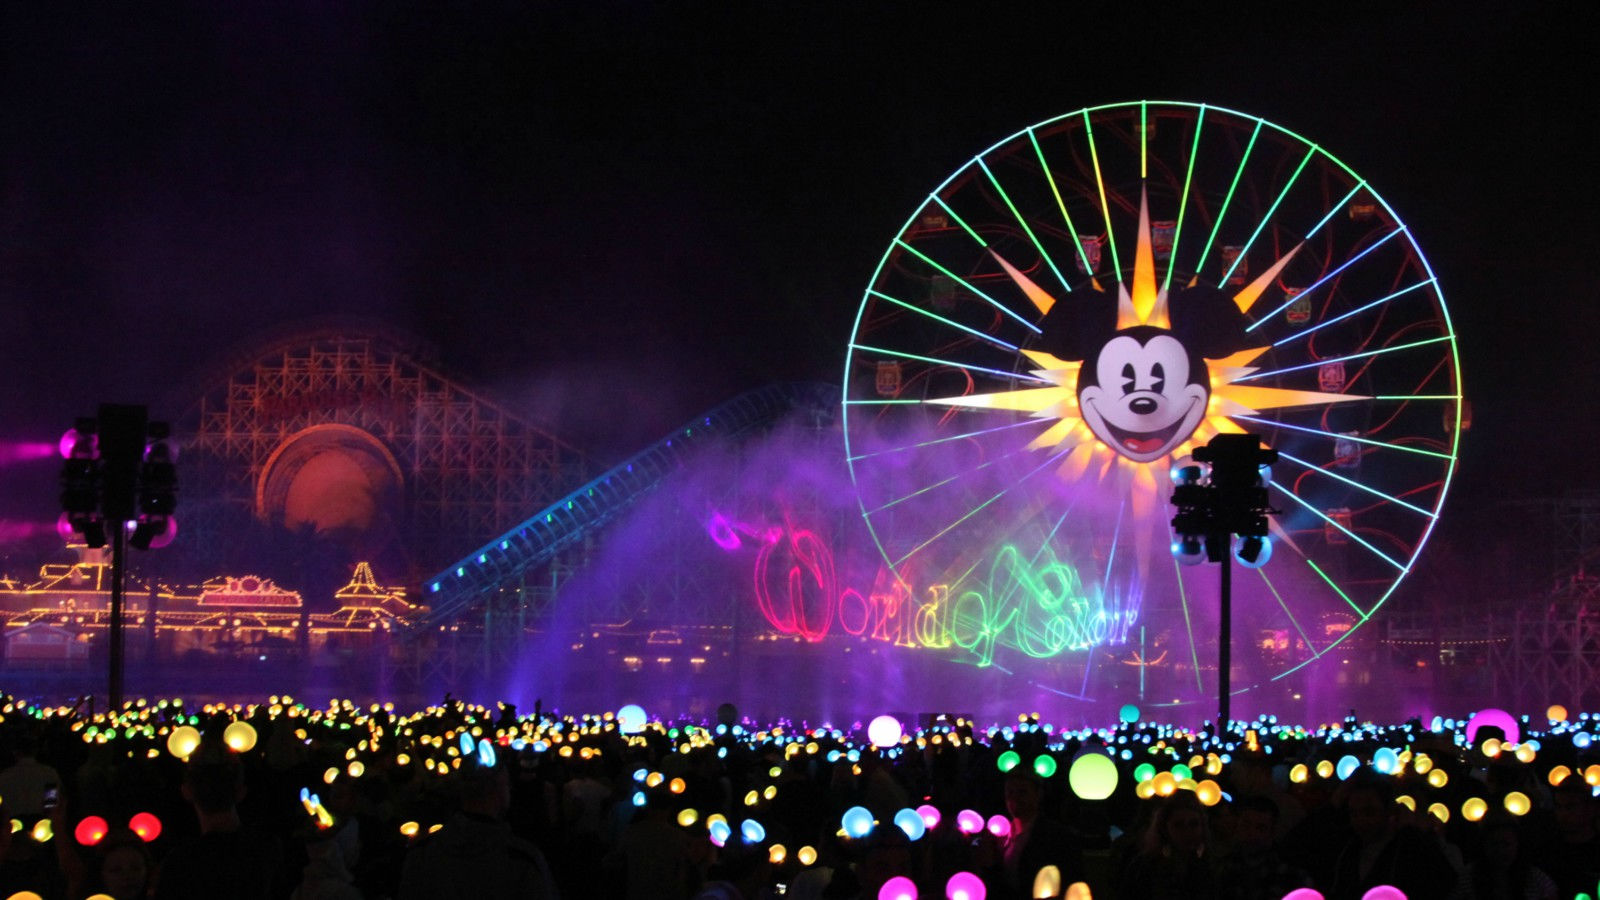 Things to Do in Los Angeles - Disneyland